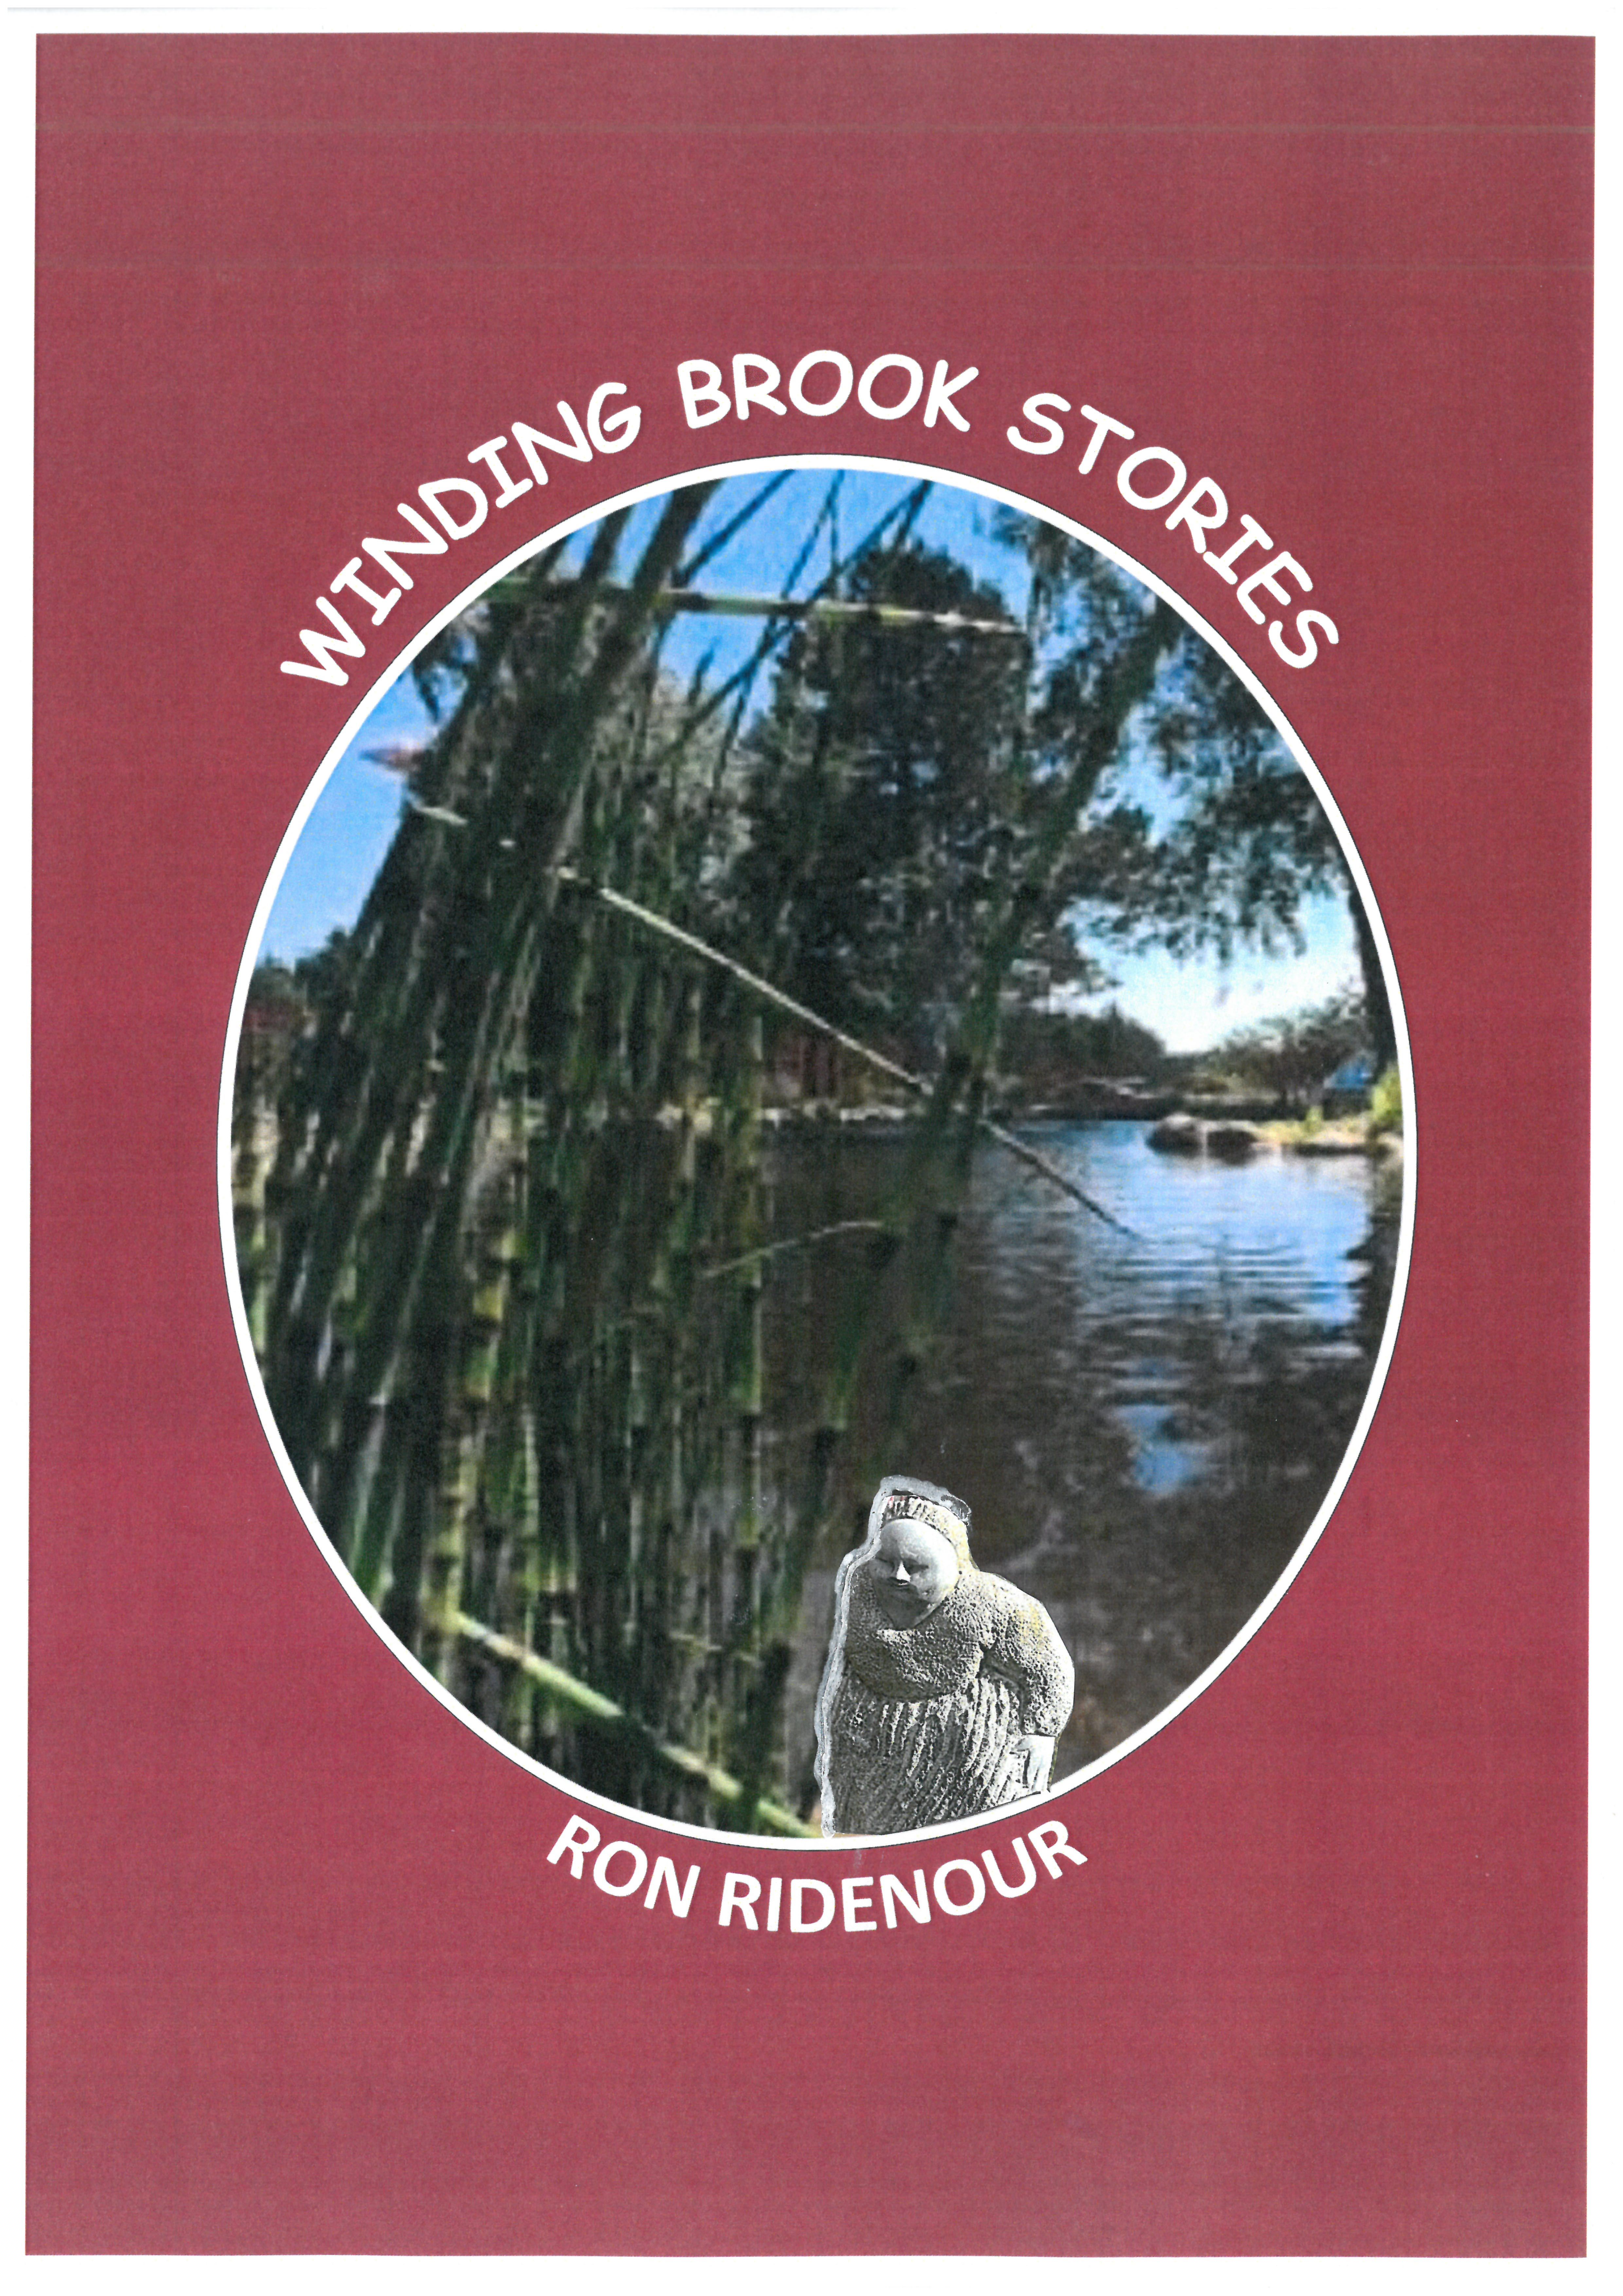 Ron Ridenour: winding brook stories